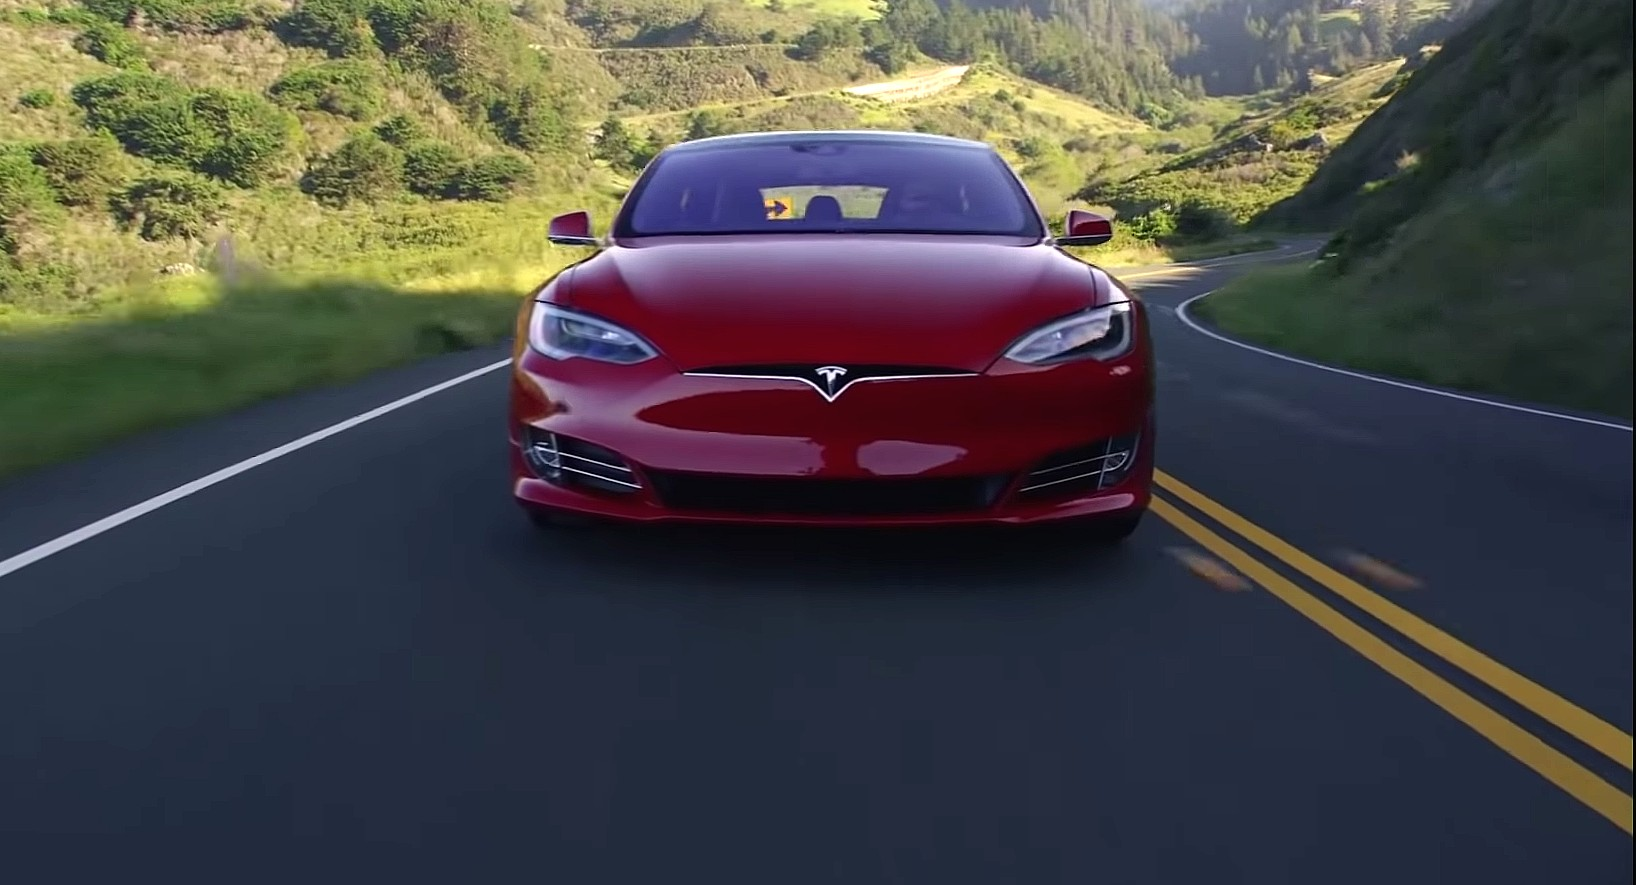 Tesla (TSLA) completes $2.7B funding round as BMW pledges more EV competition